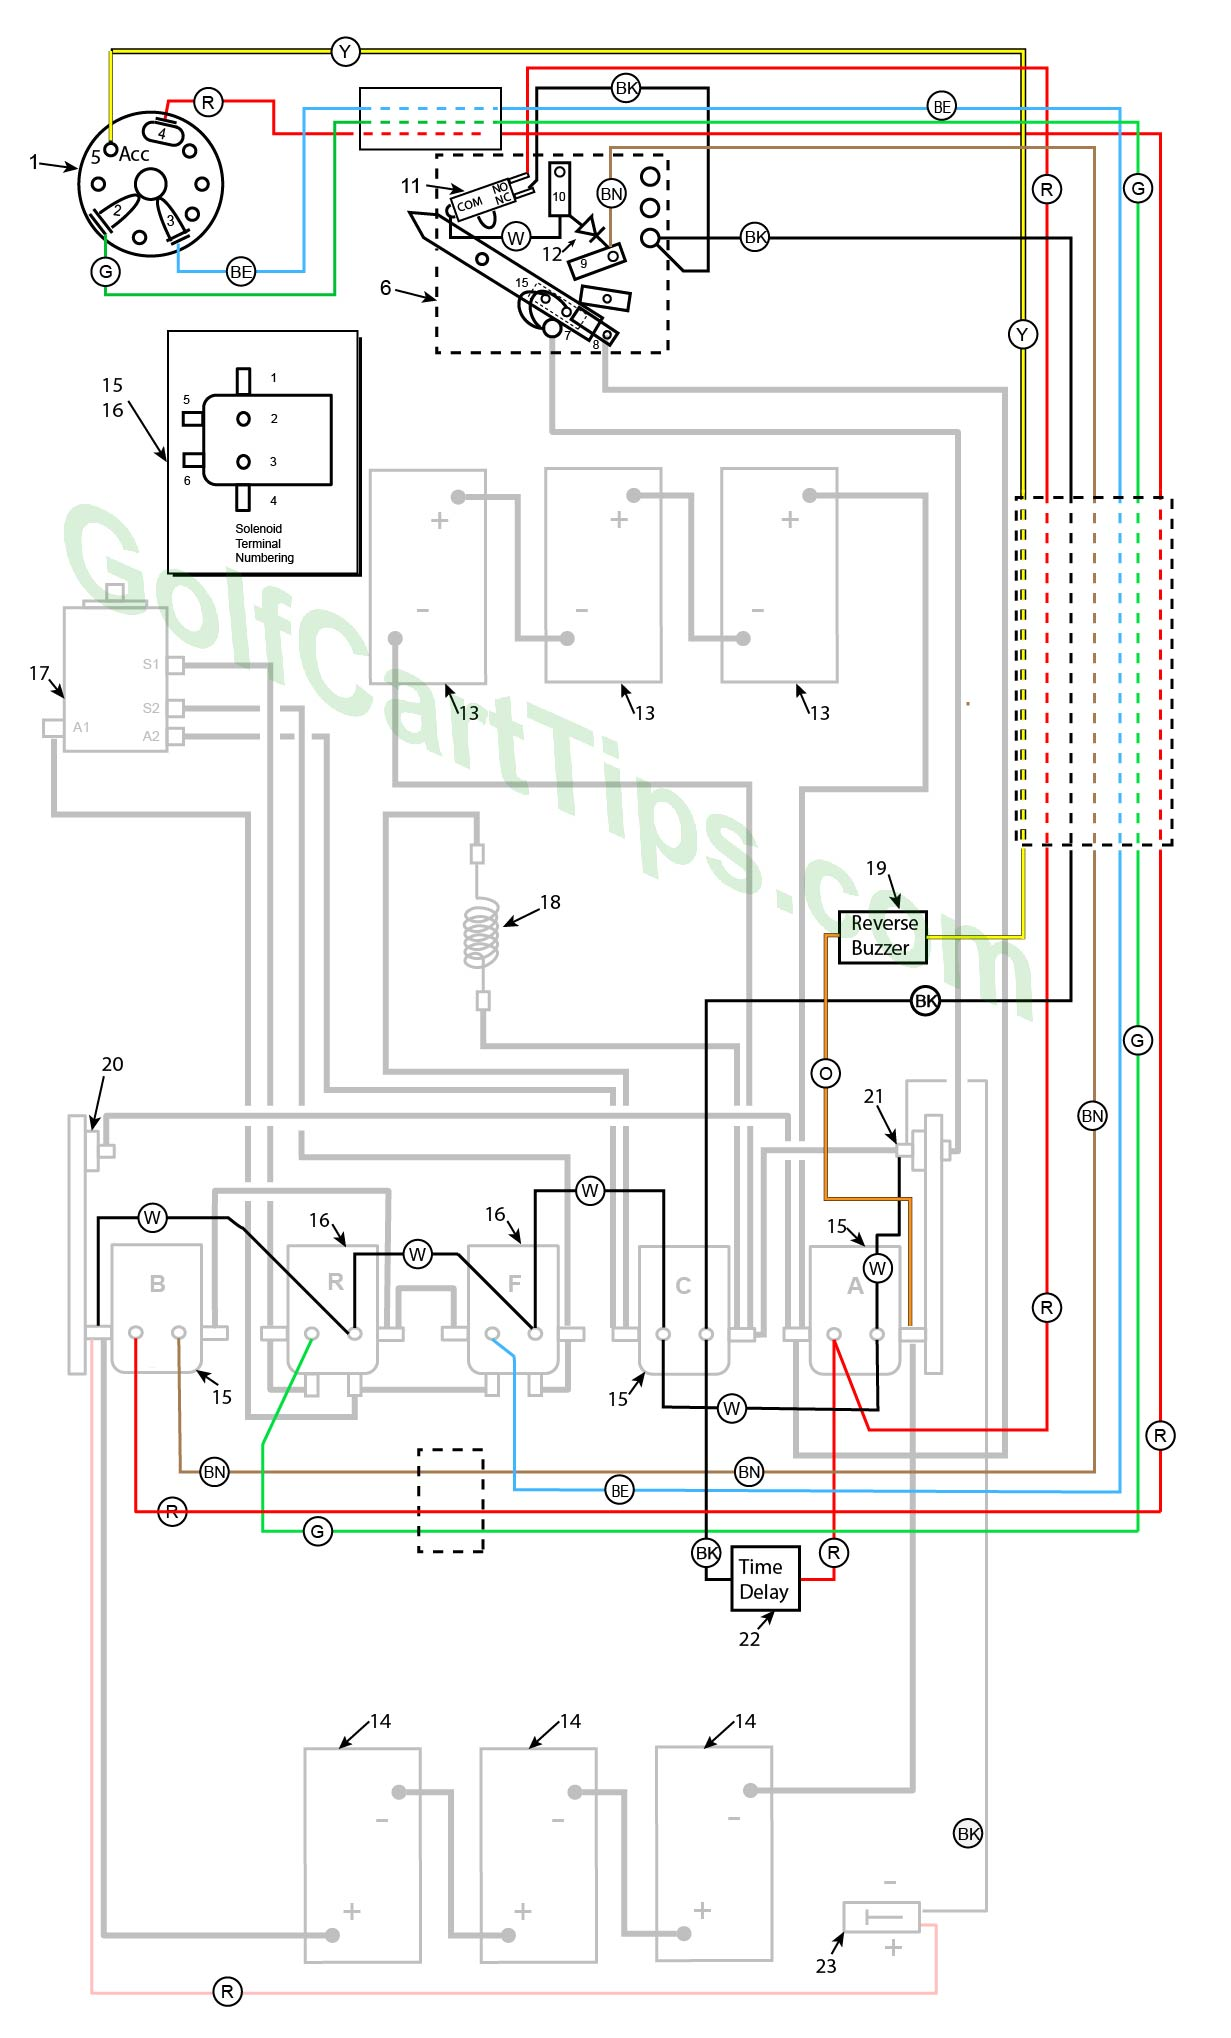 hight resolution of 1979 82 model de de 3 de 4 control circuit wiring diagram for 16 gauge wire harley davidson golf cart